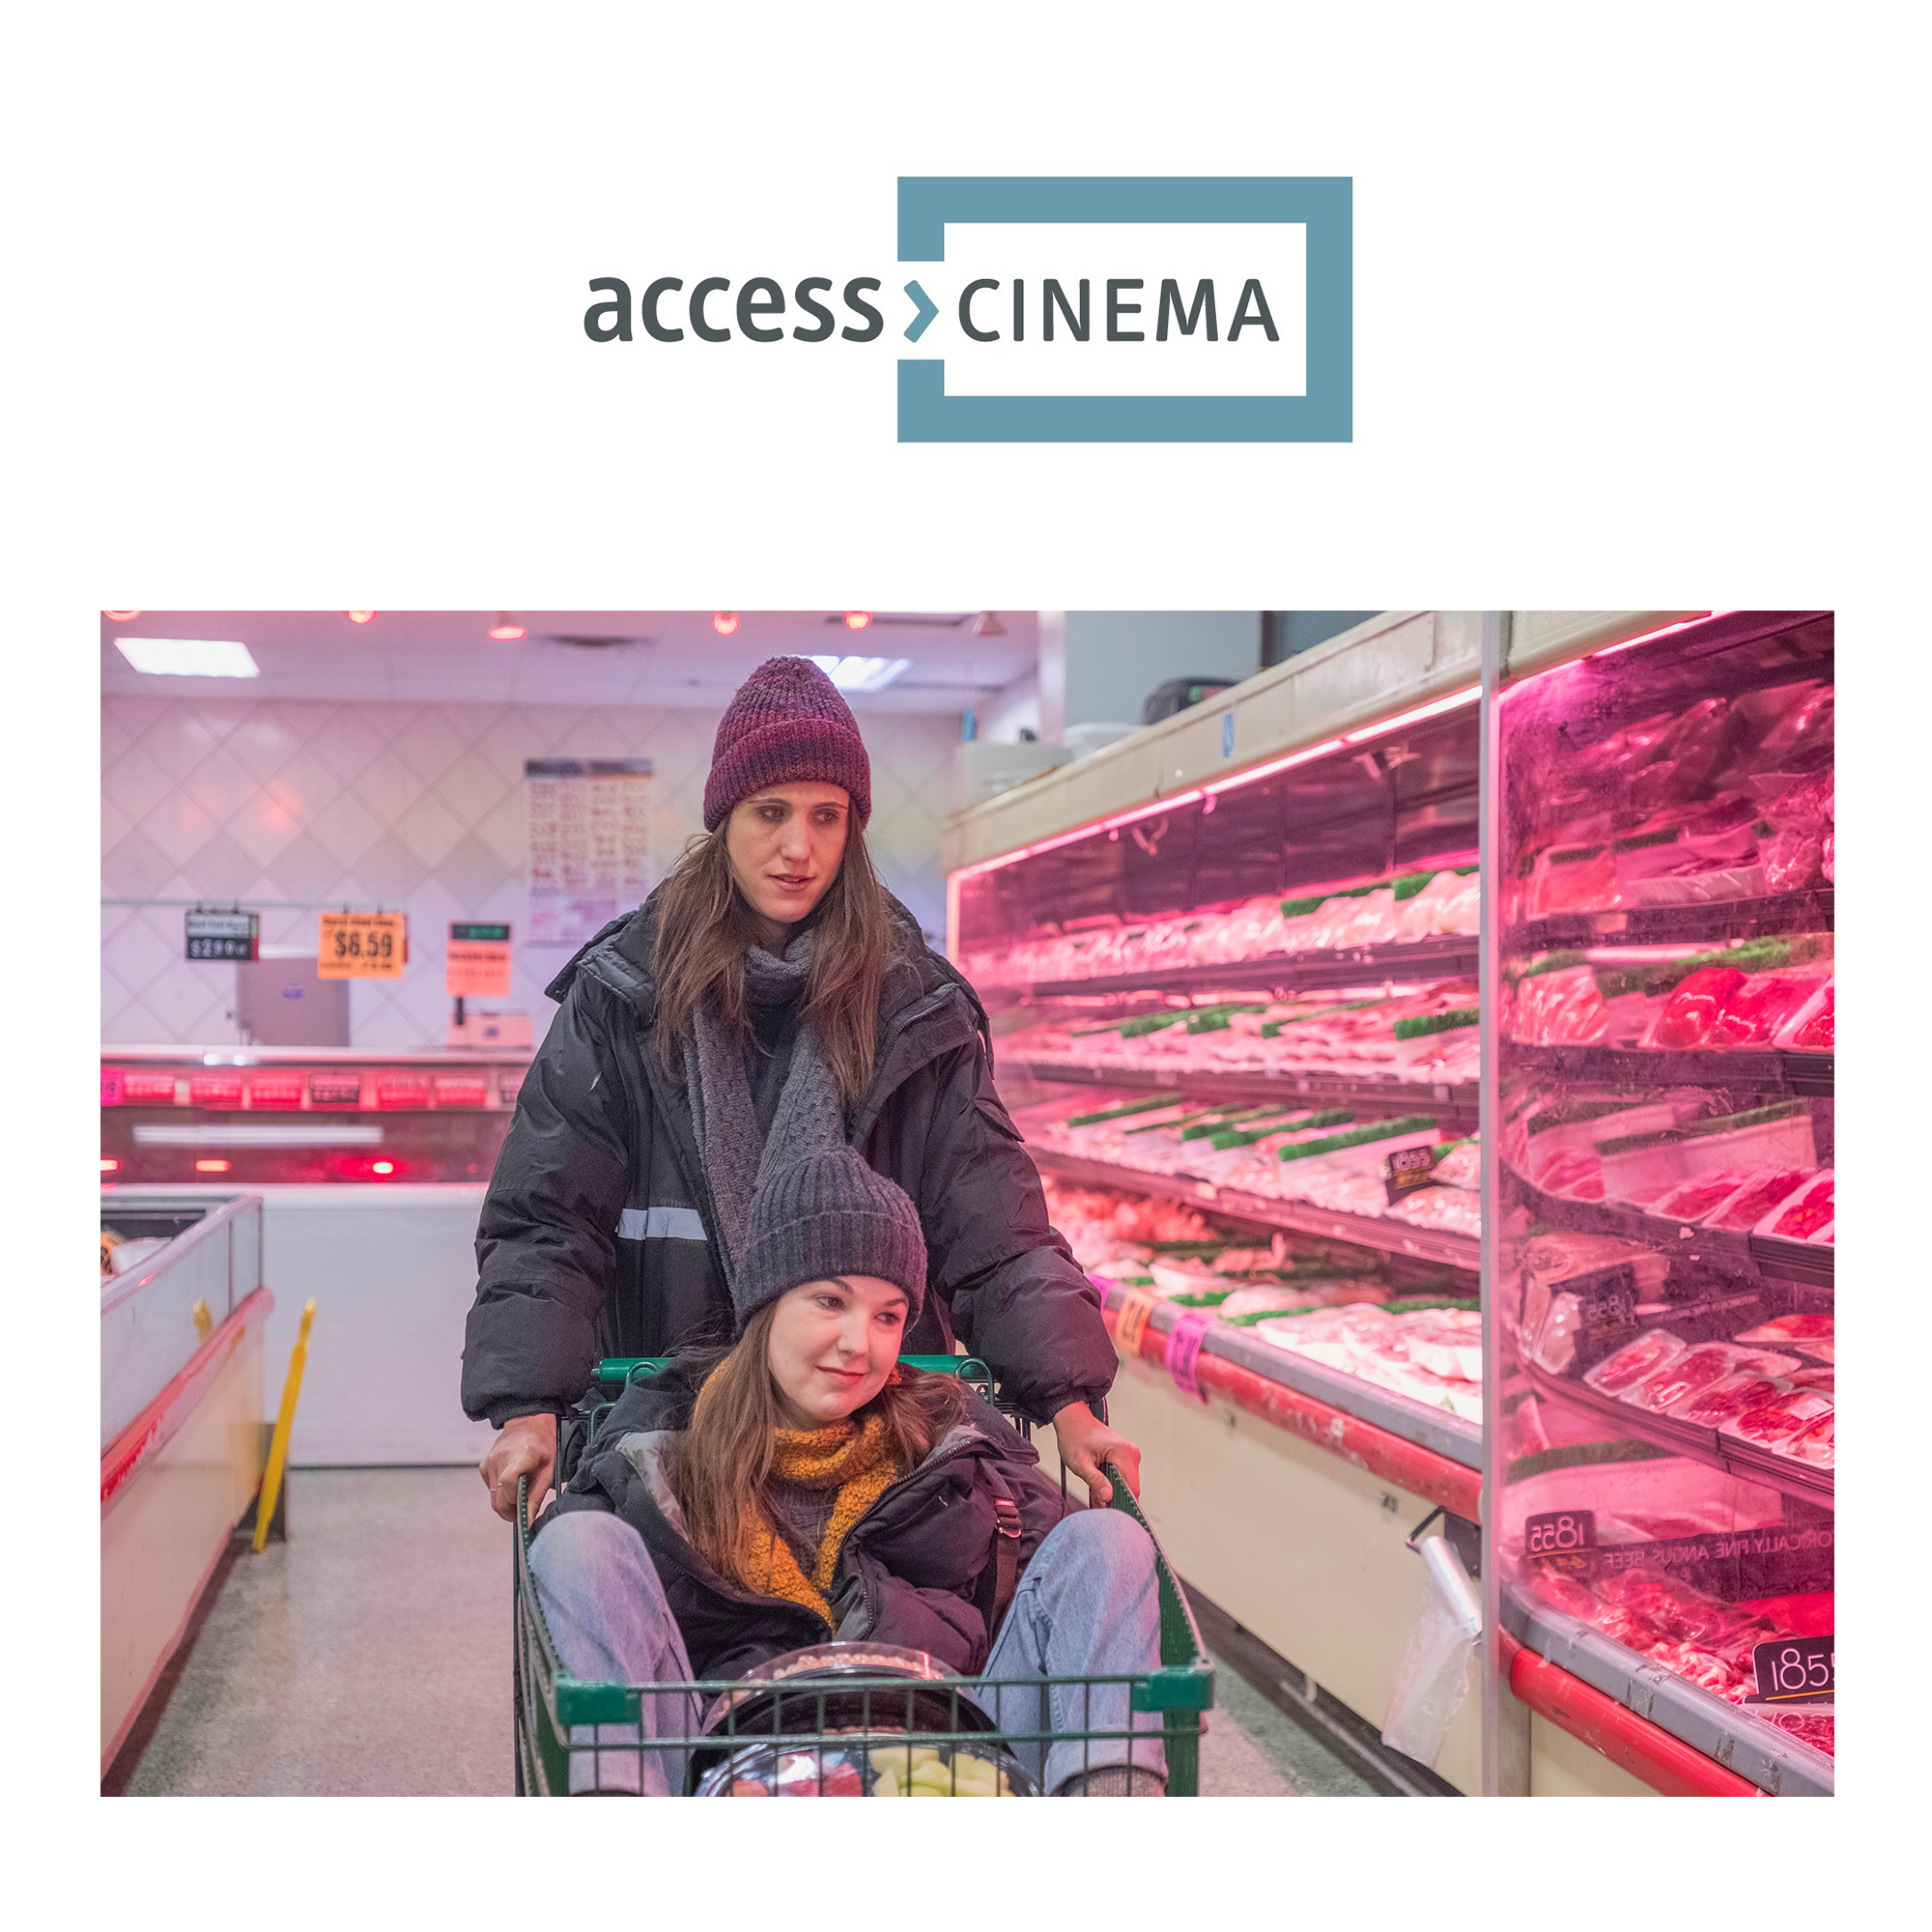 Mouthpiece at access>CINEMA